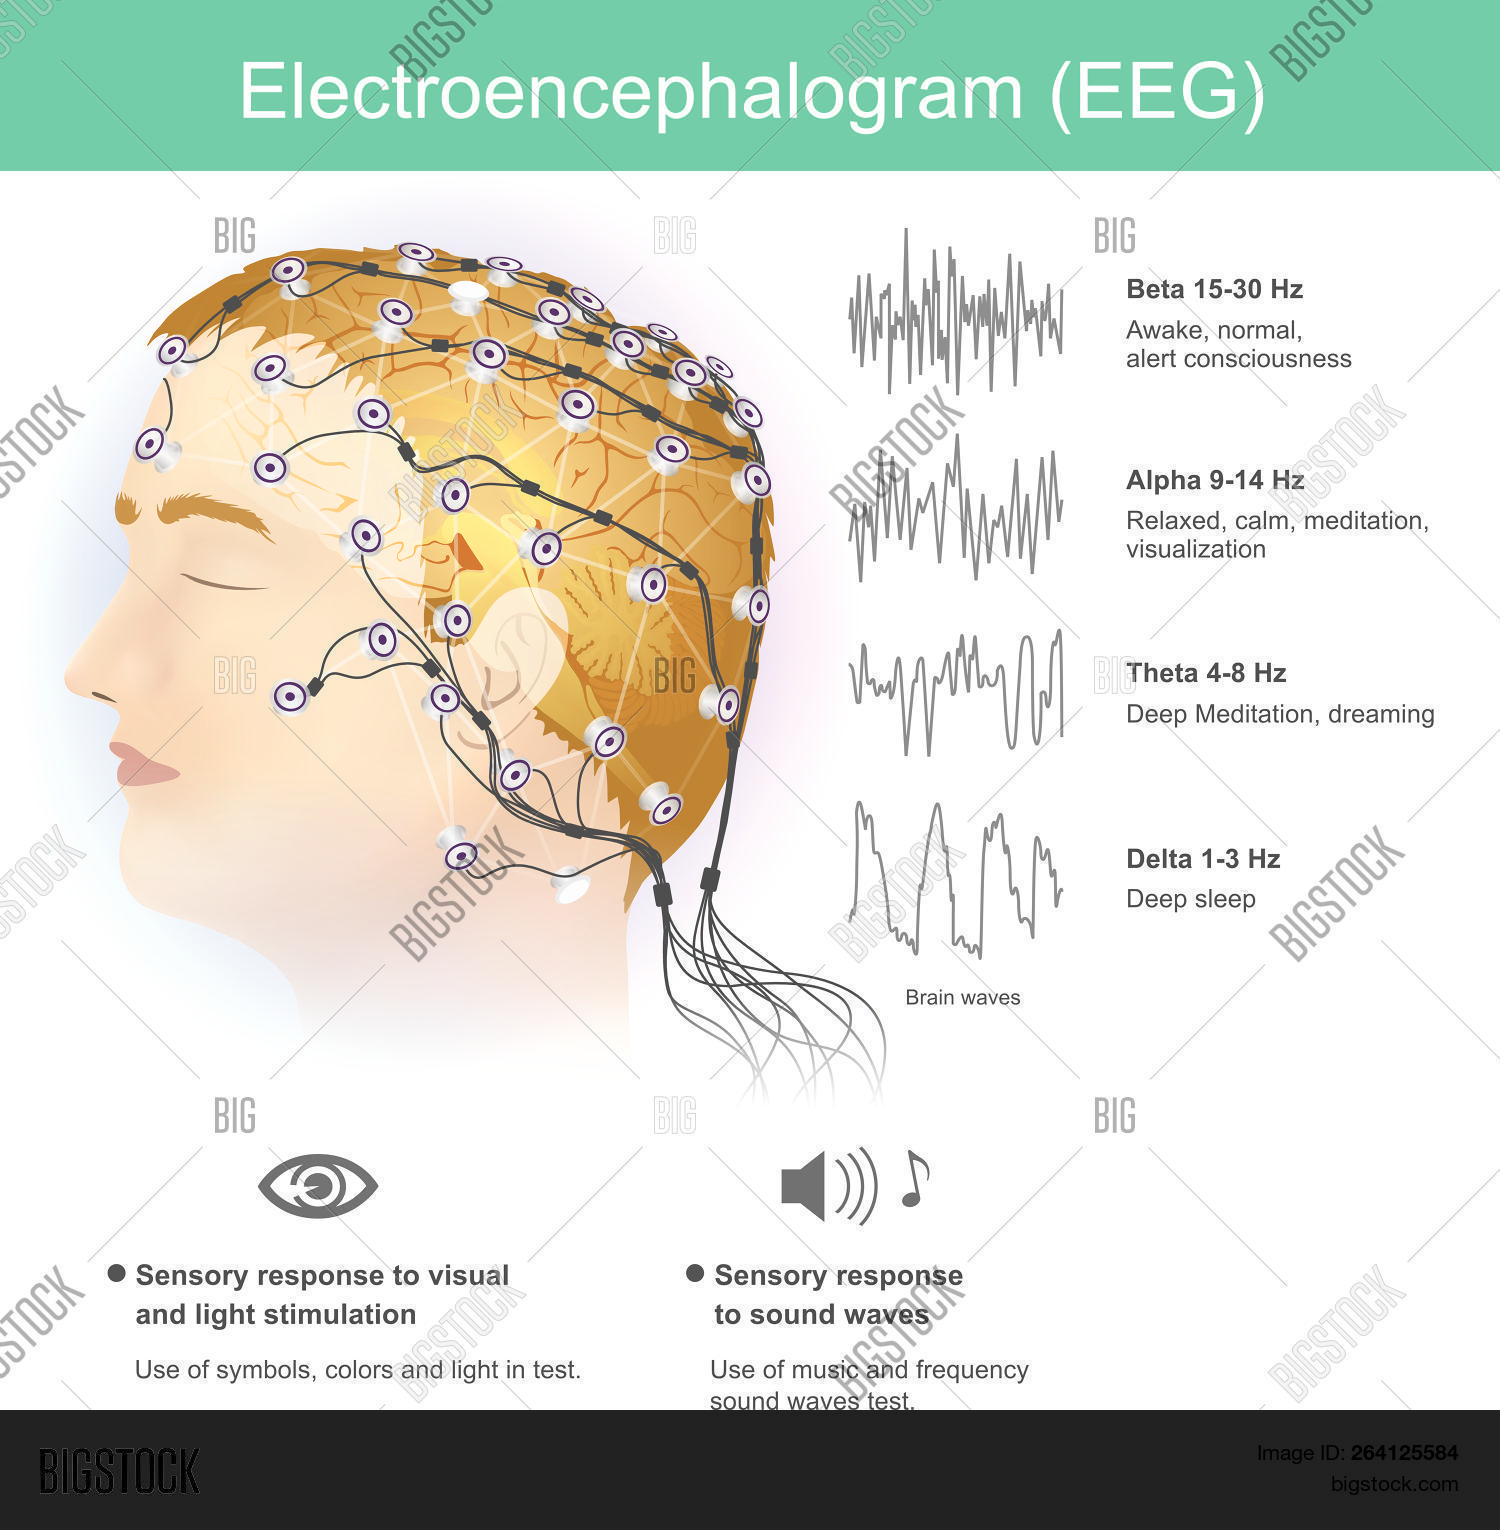 EEG,Electrodes,activity,alert,brain,central,consciousness,diagnose,diagnosis,dreaming,electrical,electrodes,electroencephalography,electromagnetic,encephalography,epilepsy,equipment,frequency,head,healthcare,hospital,human,measurement,medical,medicine,mental,nervous,neurology,neuroscience,patient,placement,processing,record,relaxed,research,science,seizures,sick,signal,sleep,sound,stimulation,system,techniques,technology,tool,treatment,visualisation,wave